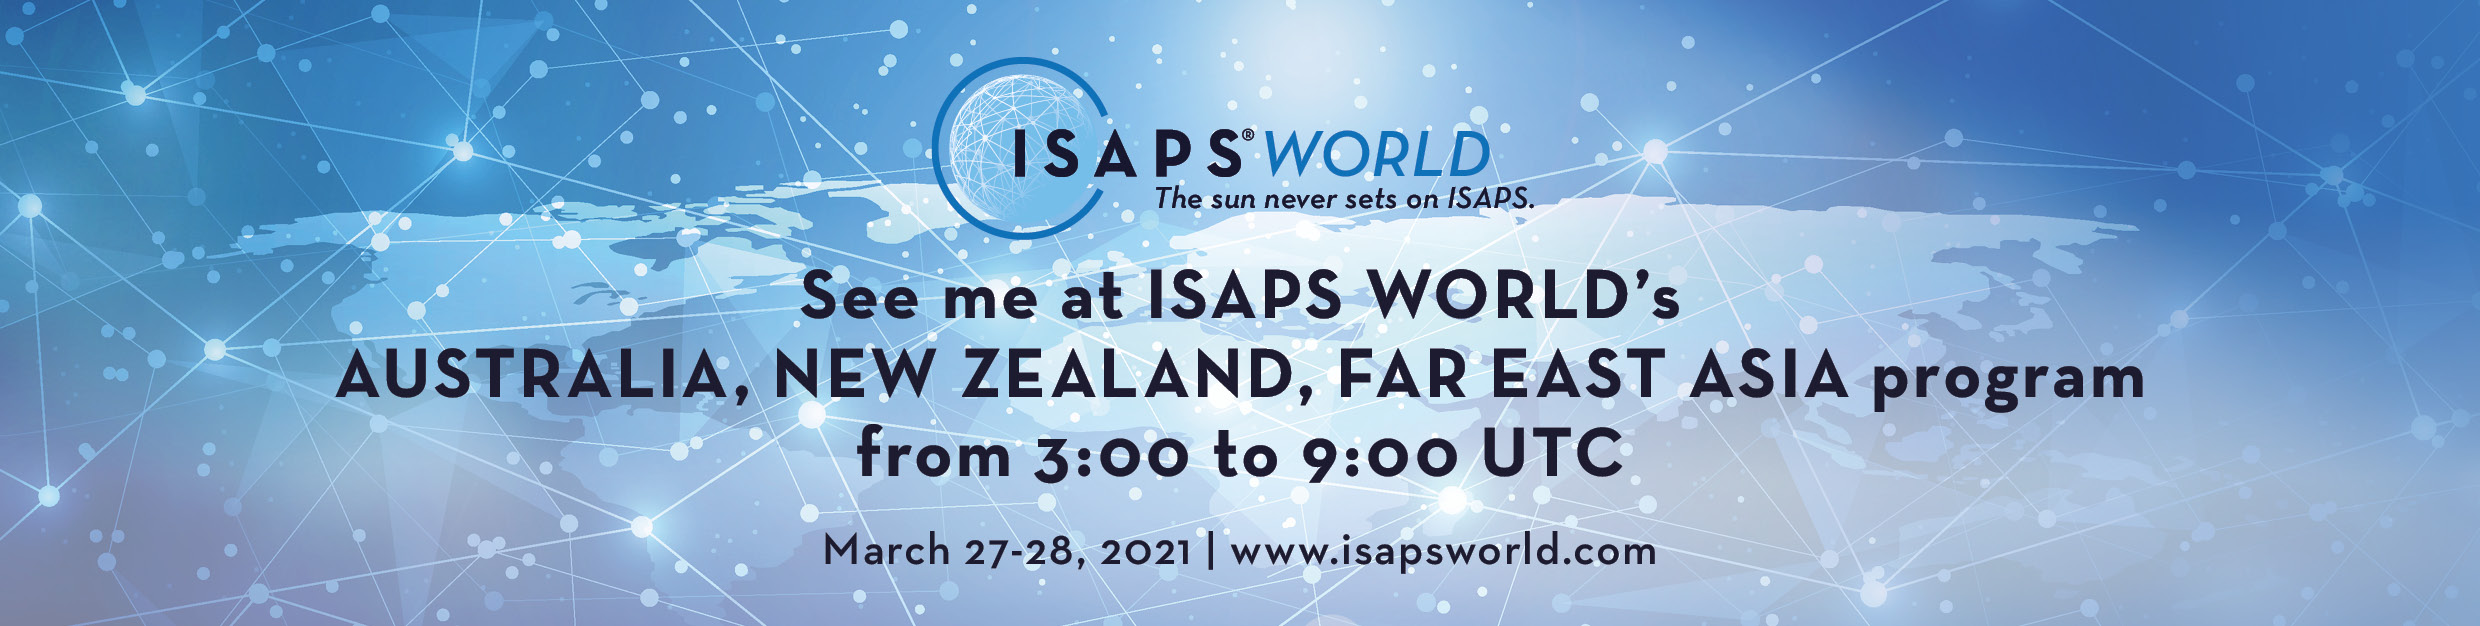 See me at ISAPS World's Program March 27-28, 2021